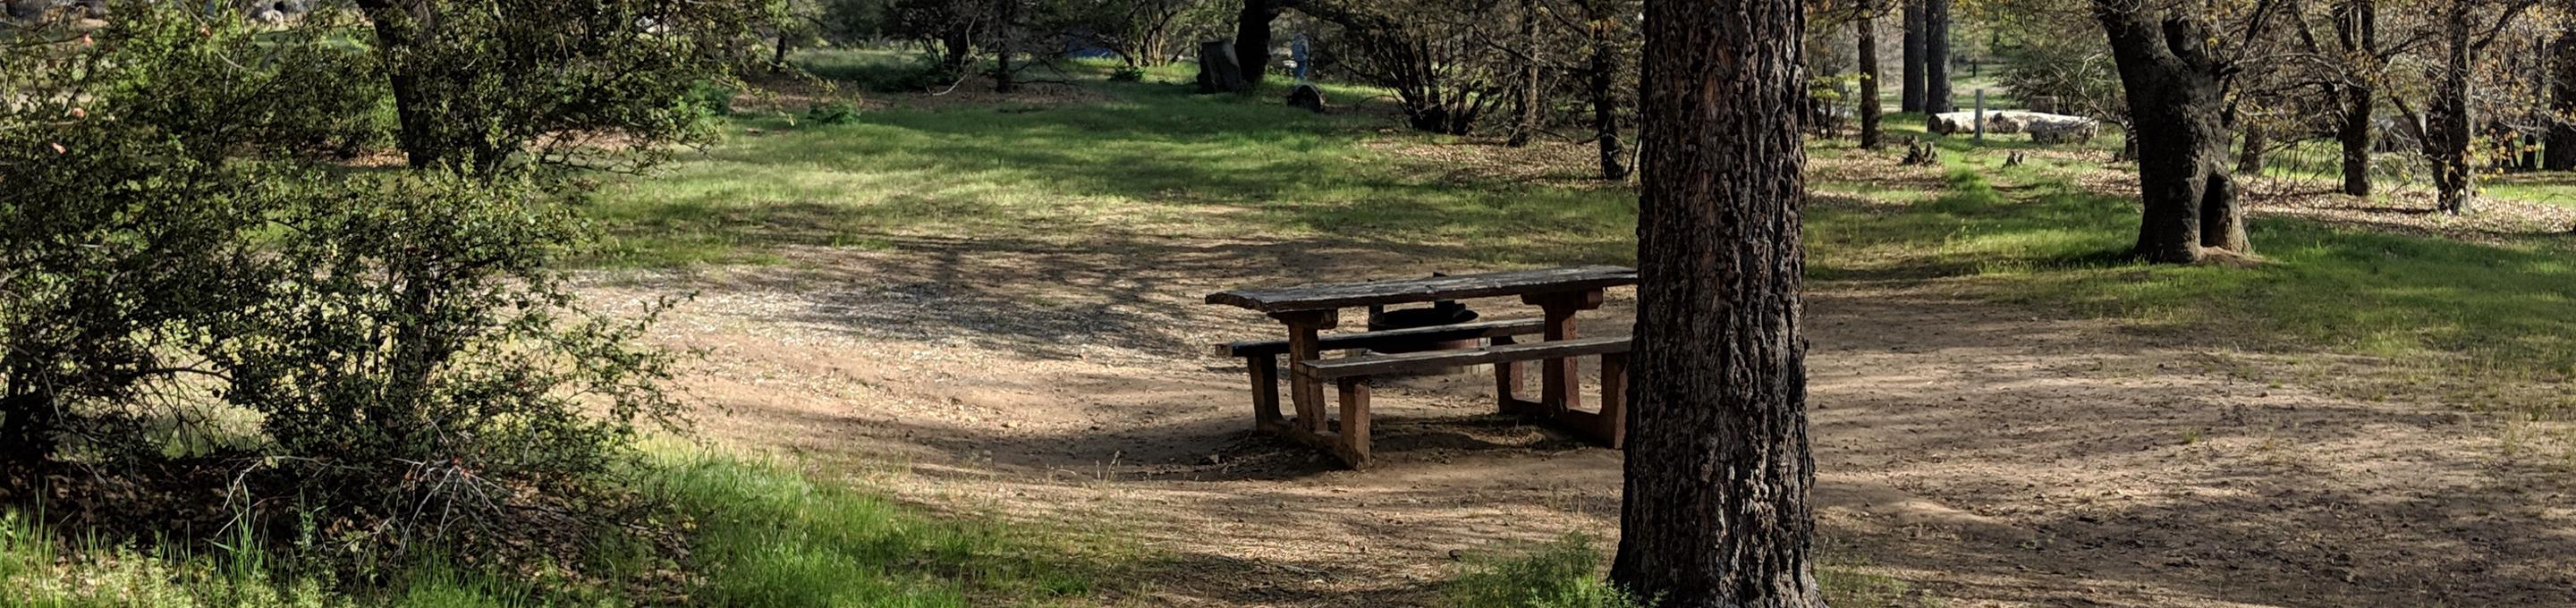 Laguna Campground site #29 featuring picnic table and camping space.